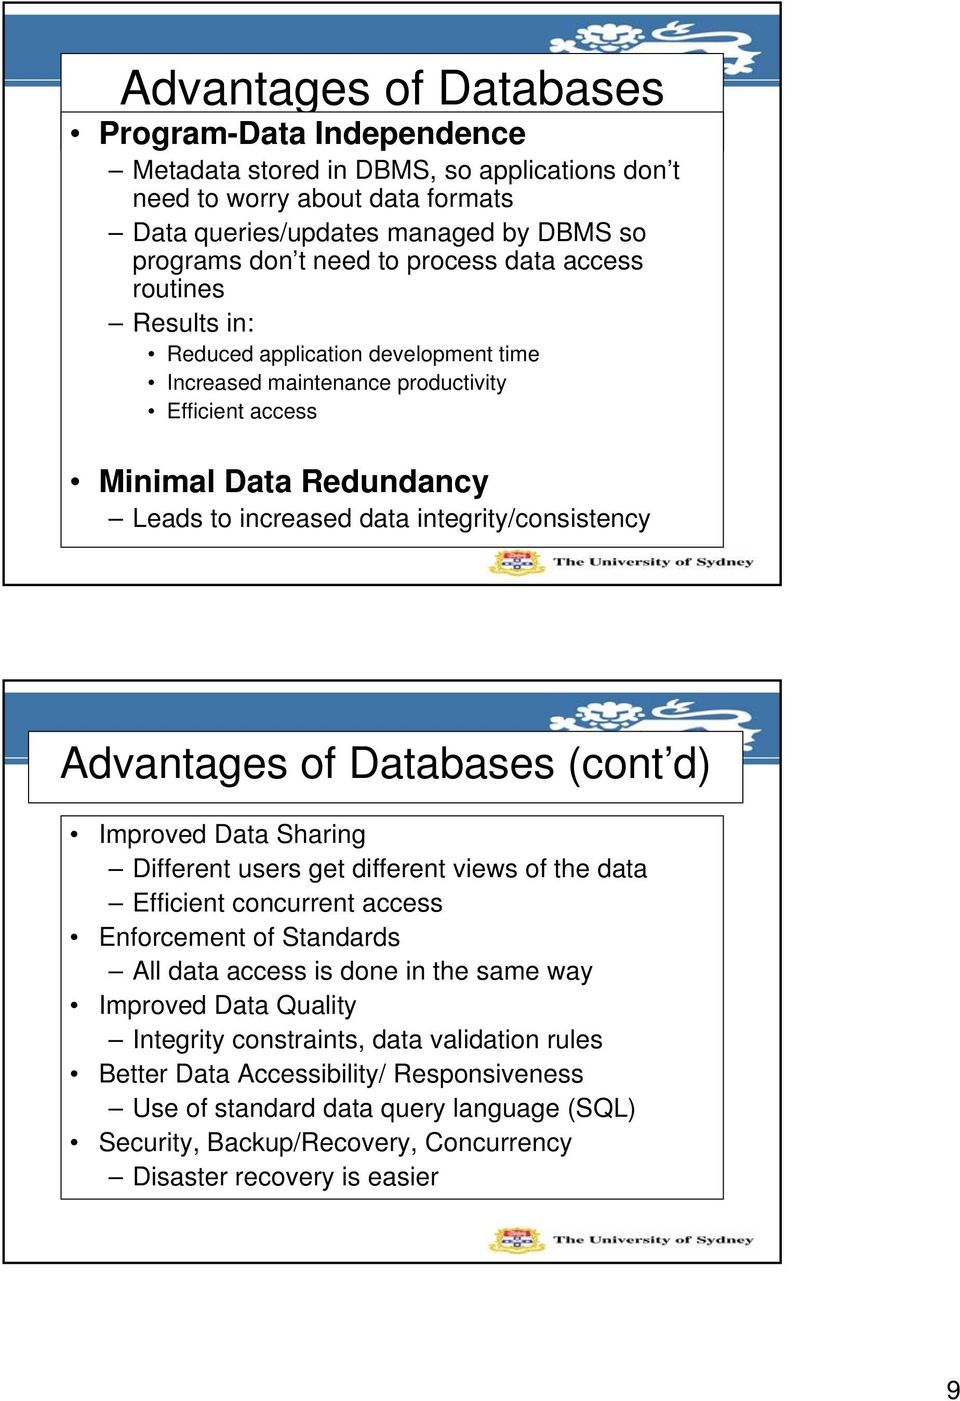 Advantages of Databases (cont d) Improved Data Sharing Different users get different views of the data Efficient concurrent access Enforcement of Standards All data access is done in the same way